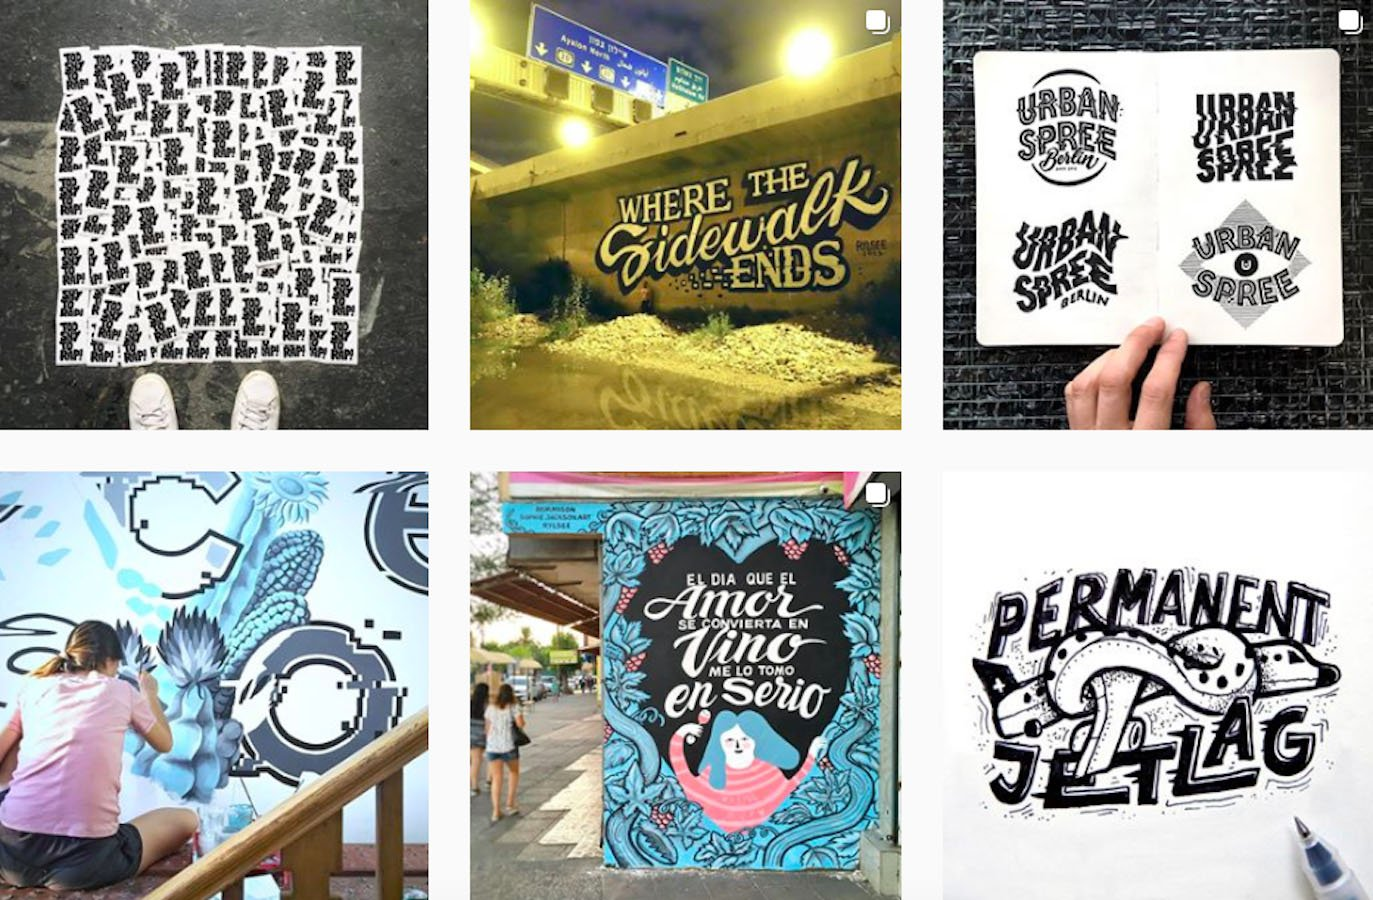 Web Design Inspiration: 110+ Accounts On Instagram and 10+ Best UX & Web Design Books in 2020 - rylsee